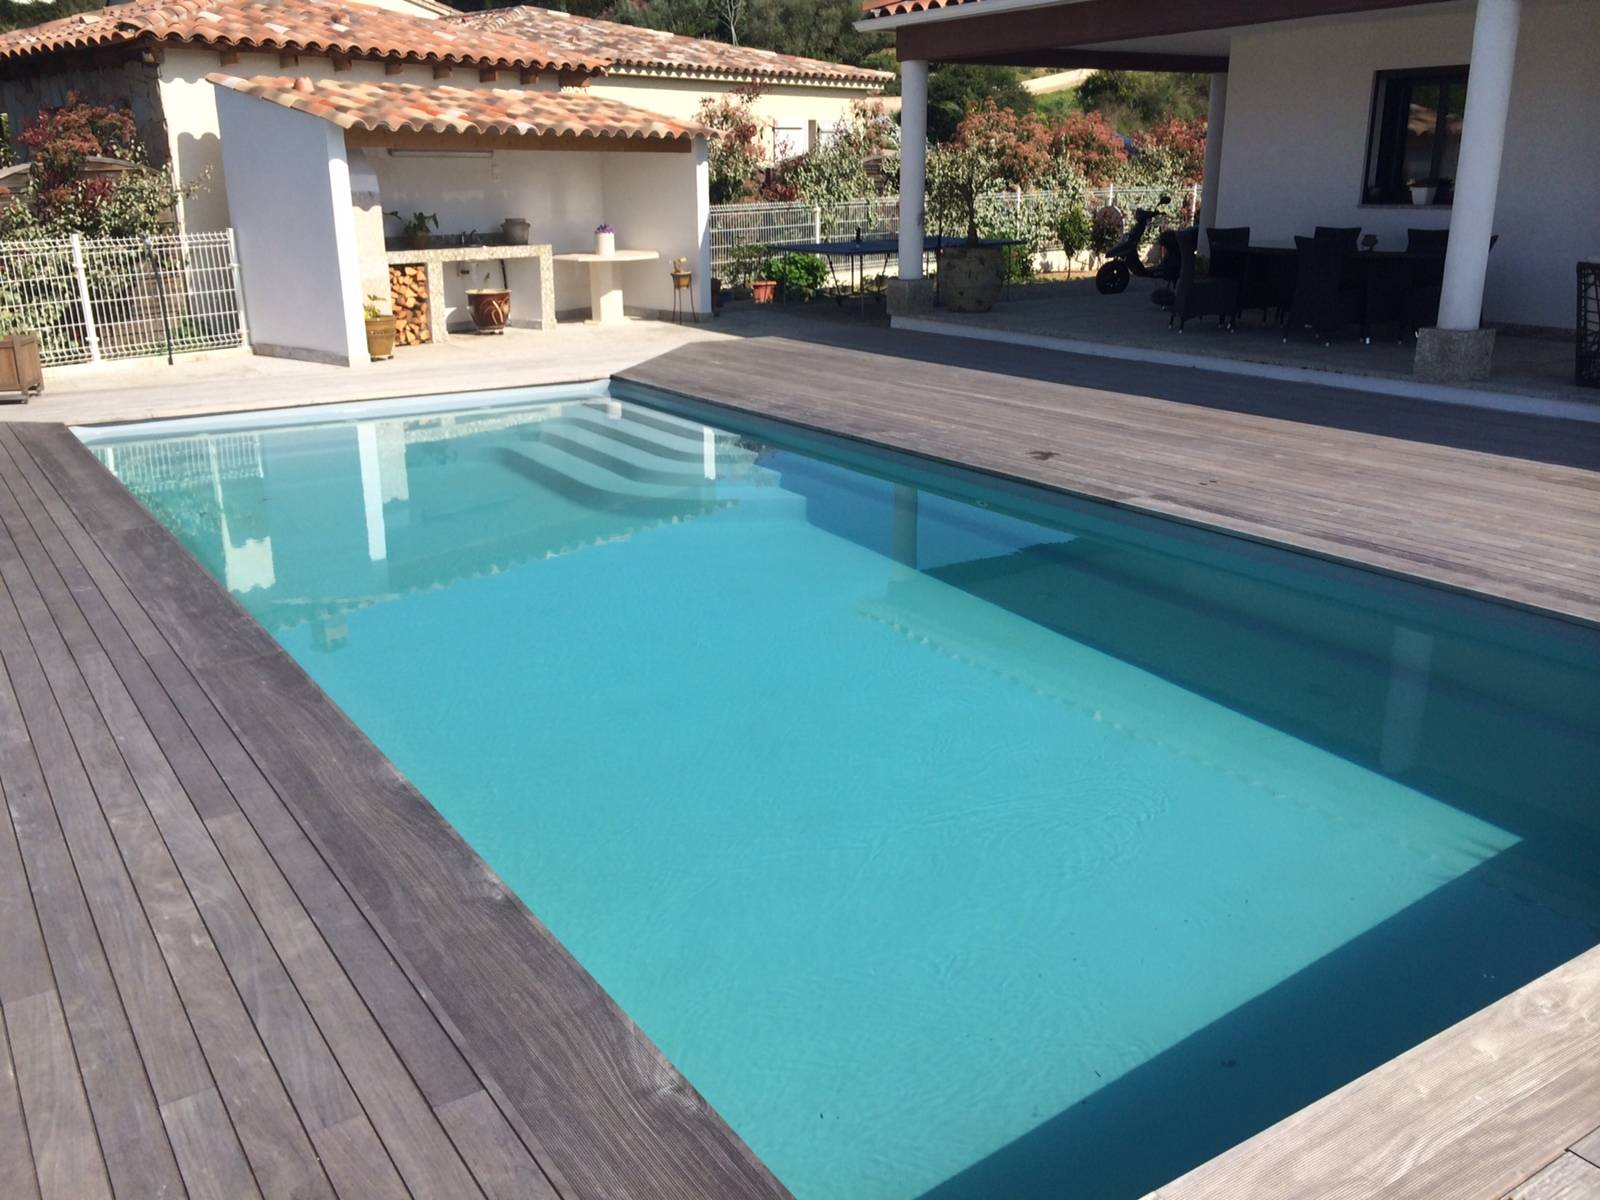 Vente et pose de piscine enterr e coque polyester for Piscine beton ou coque